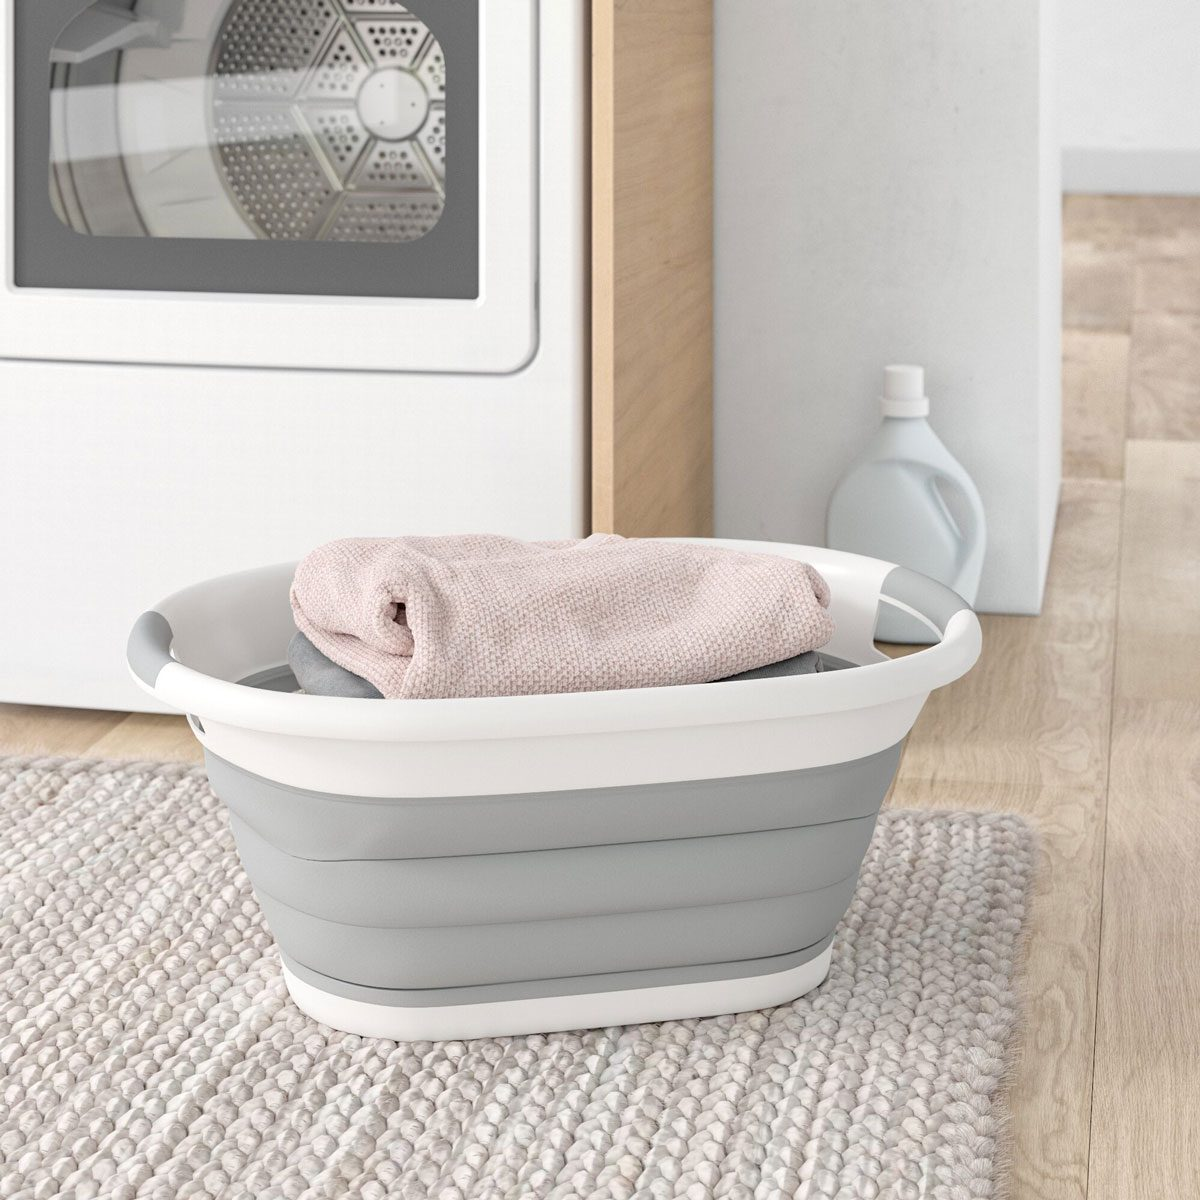 Collapsible+plastic+oval+laundry+basket